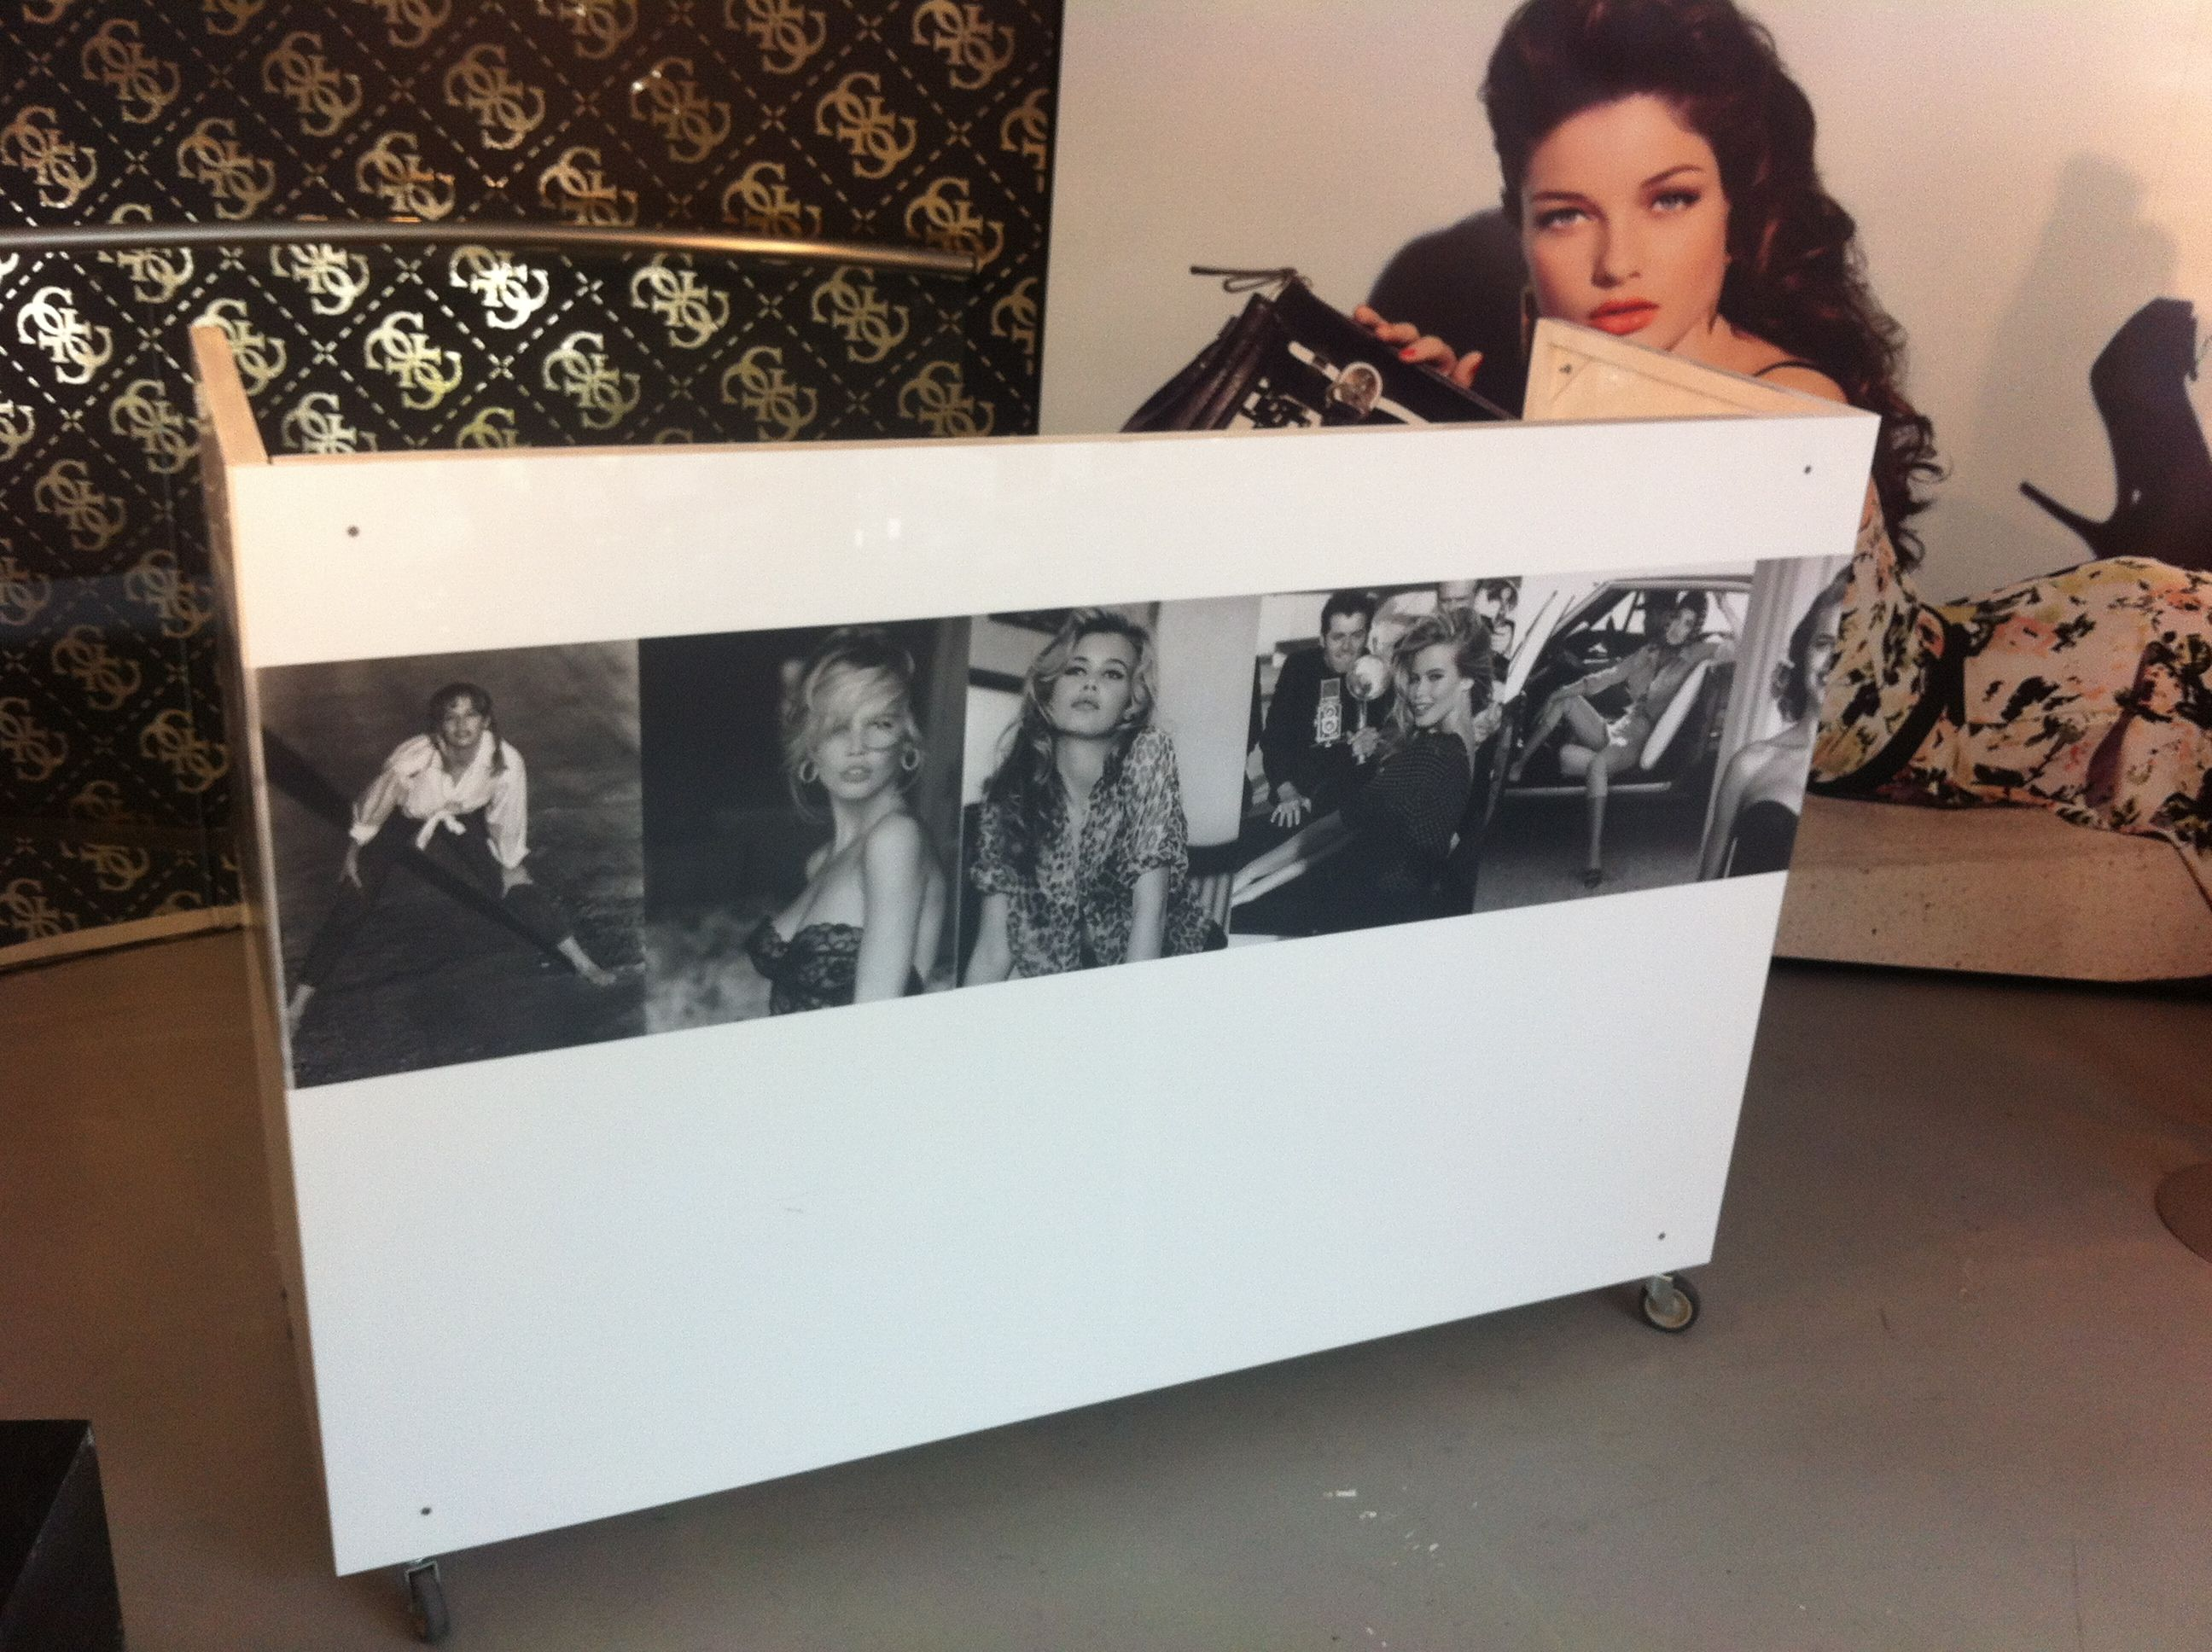 One of the many ways our DJ Booths can be personalized for an event.